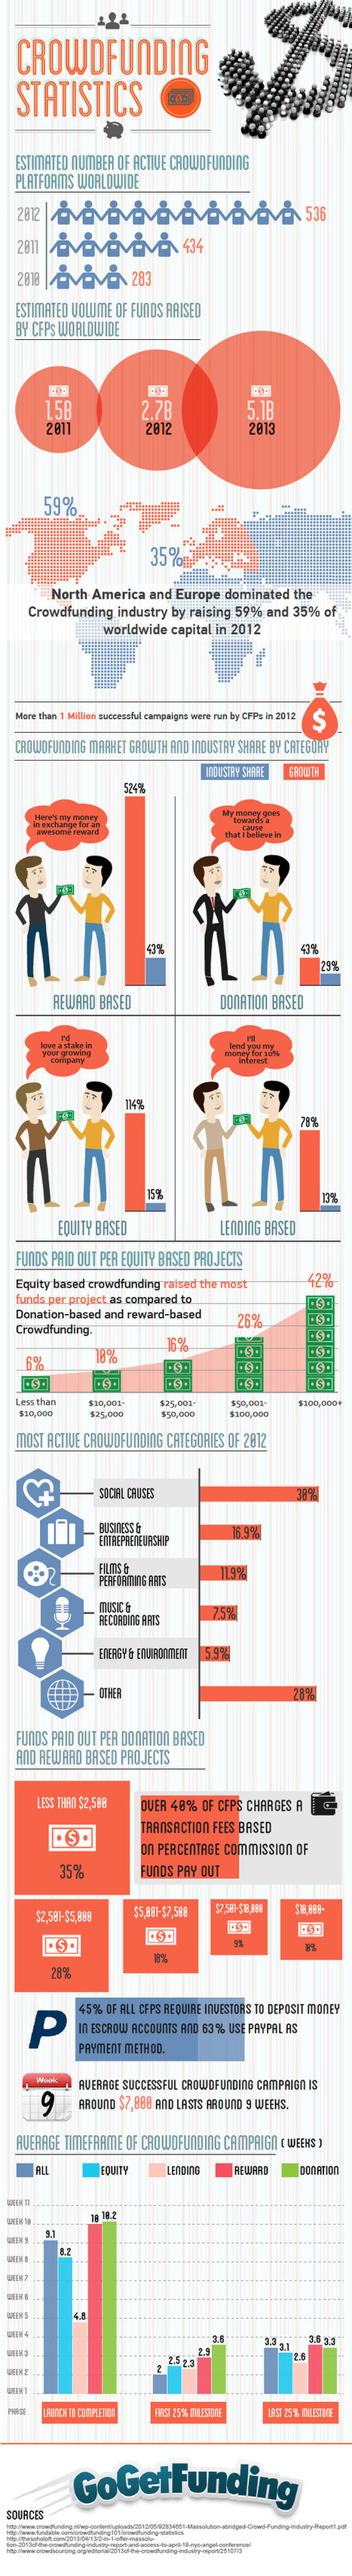 Crowdfunding statistics & trends [infographic] - Holy Kaw! | Crowdfunding World | Scoop.it